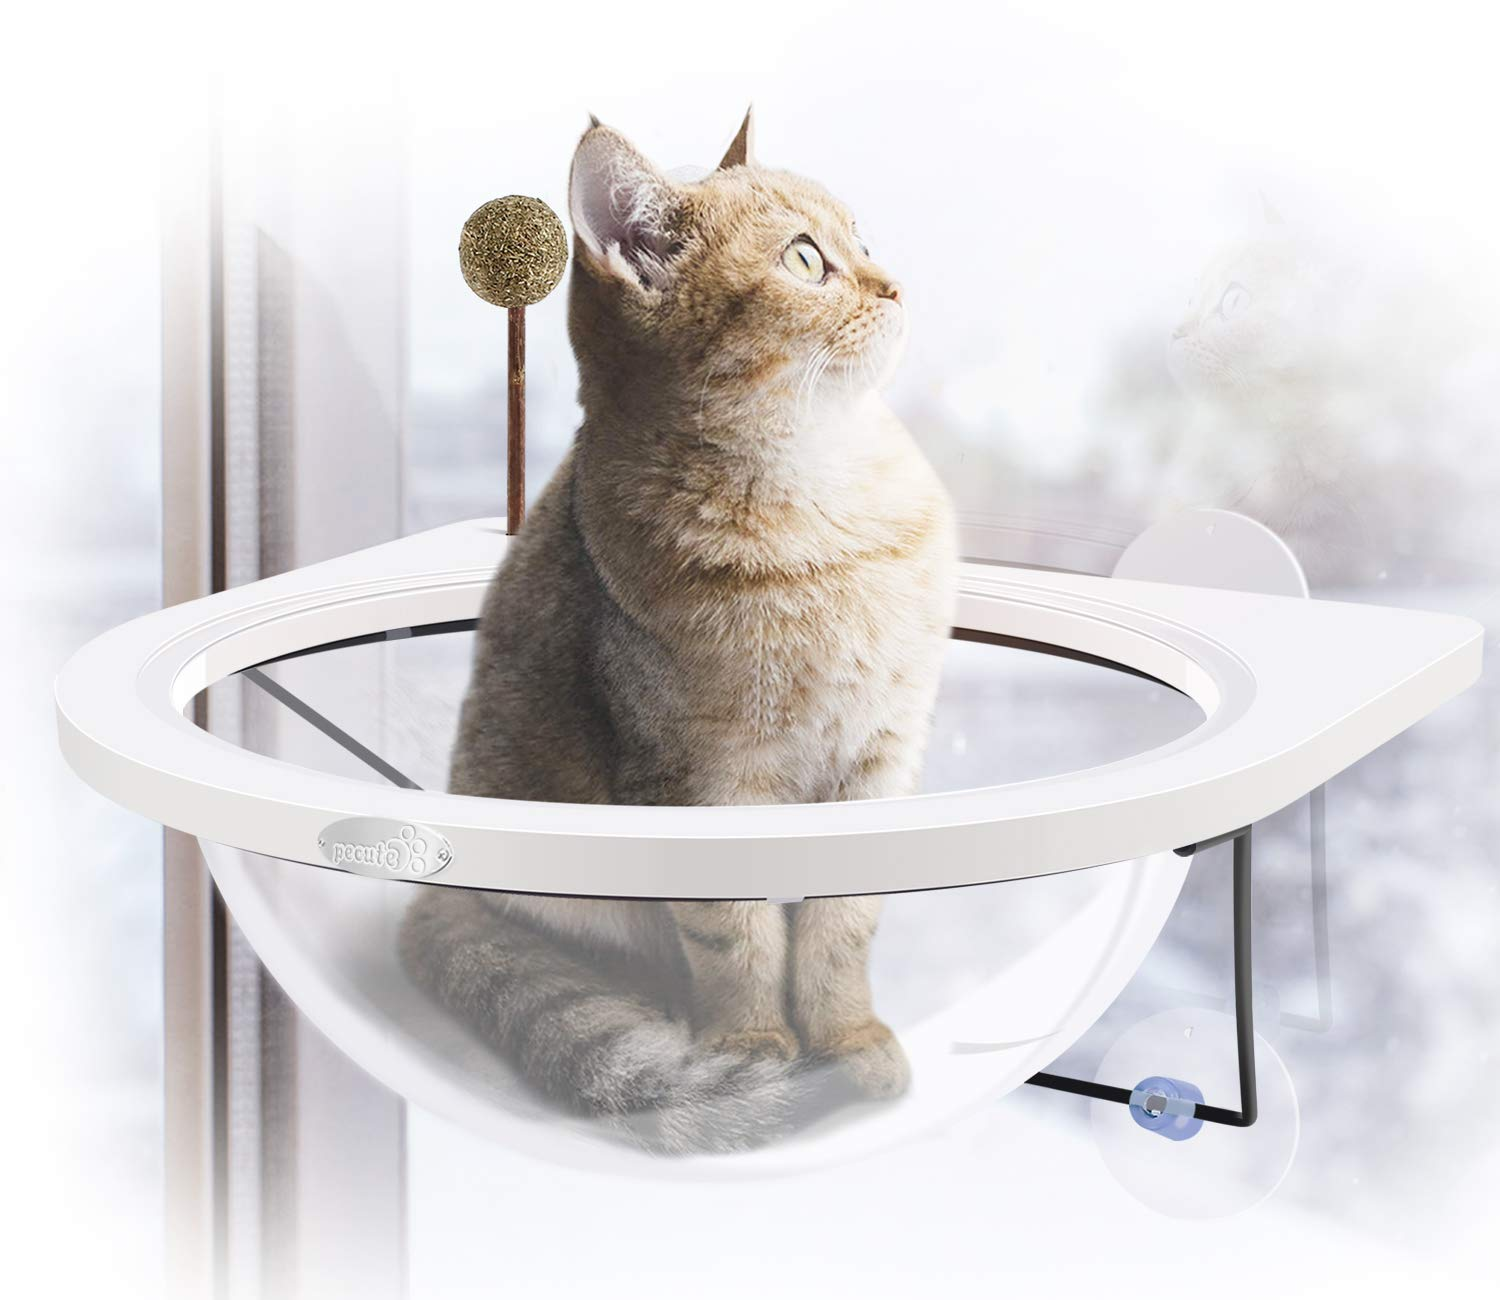 Pecute Cat Window Perches [Newest Design], Cats Hammock Window Mounted Bed Sunny Seat Kitten Hanging Bed Bubble Looking, Sturdy with Advanced Fram Suction Cup-Hold Pets Up 10KG(Dia 30 CM,Catnip Bonus)